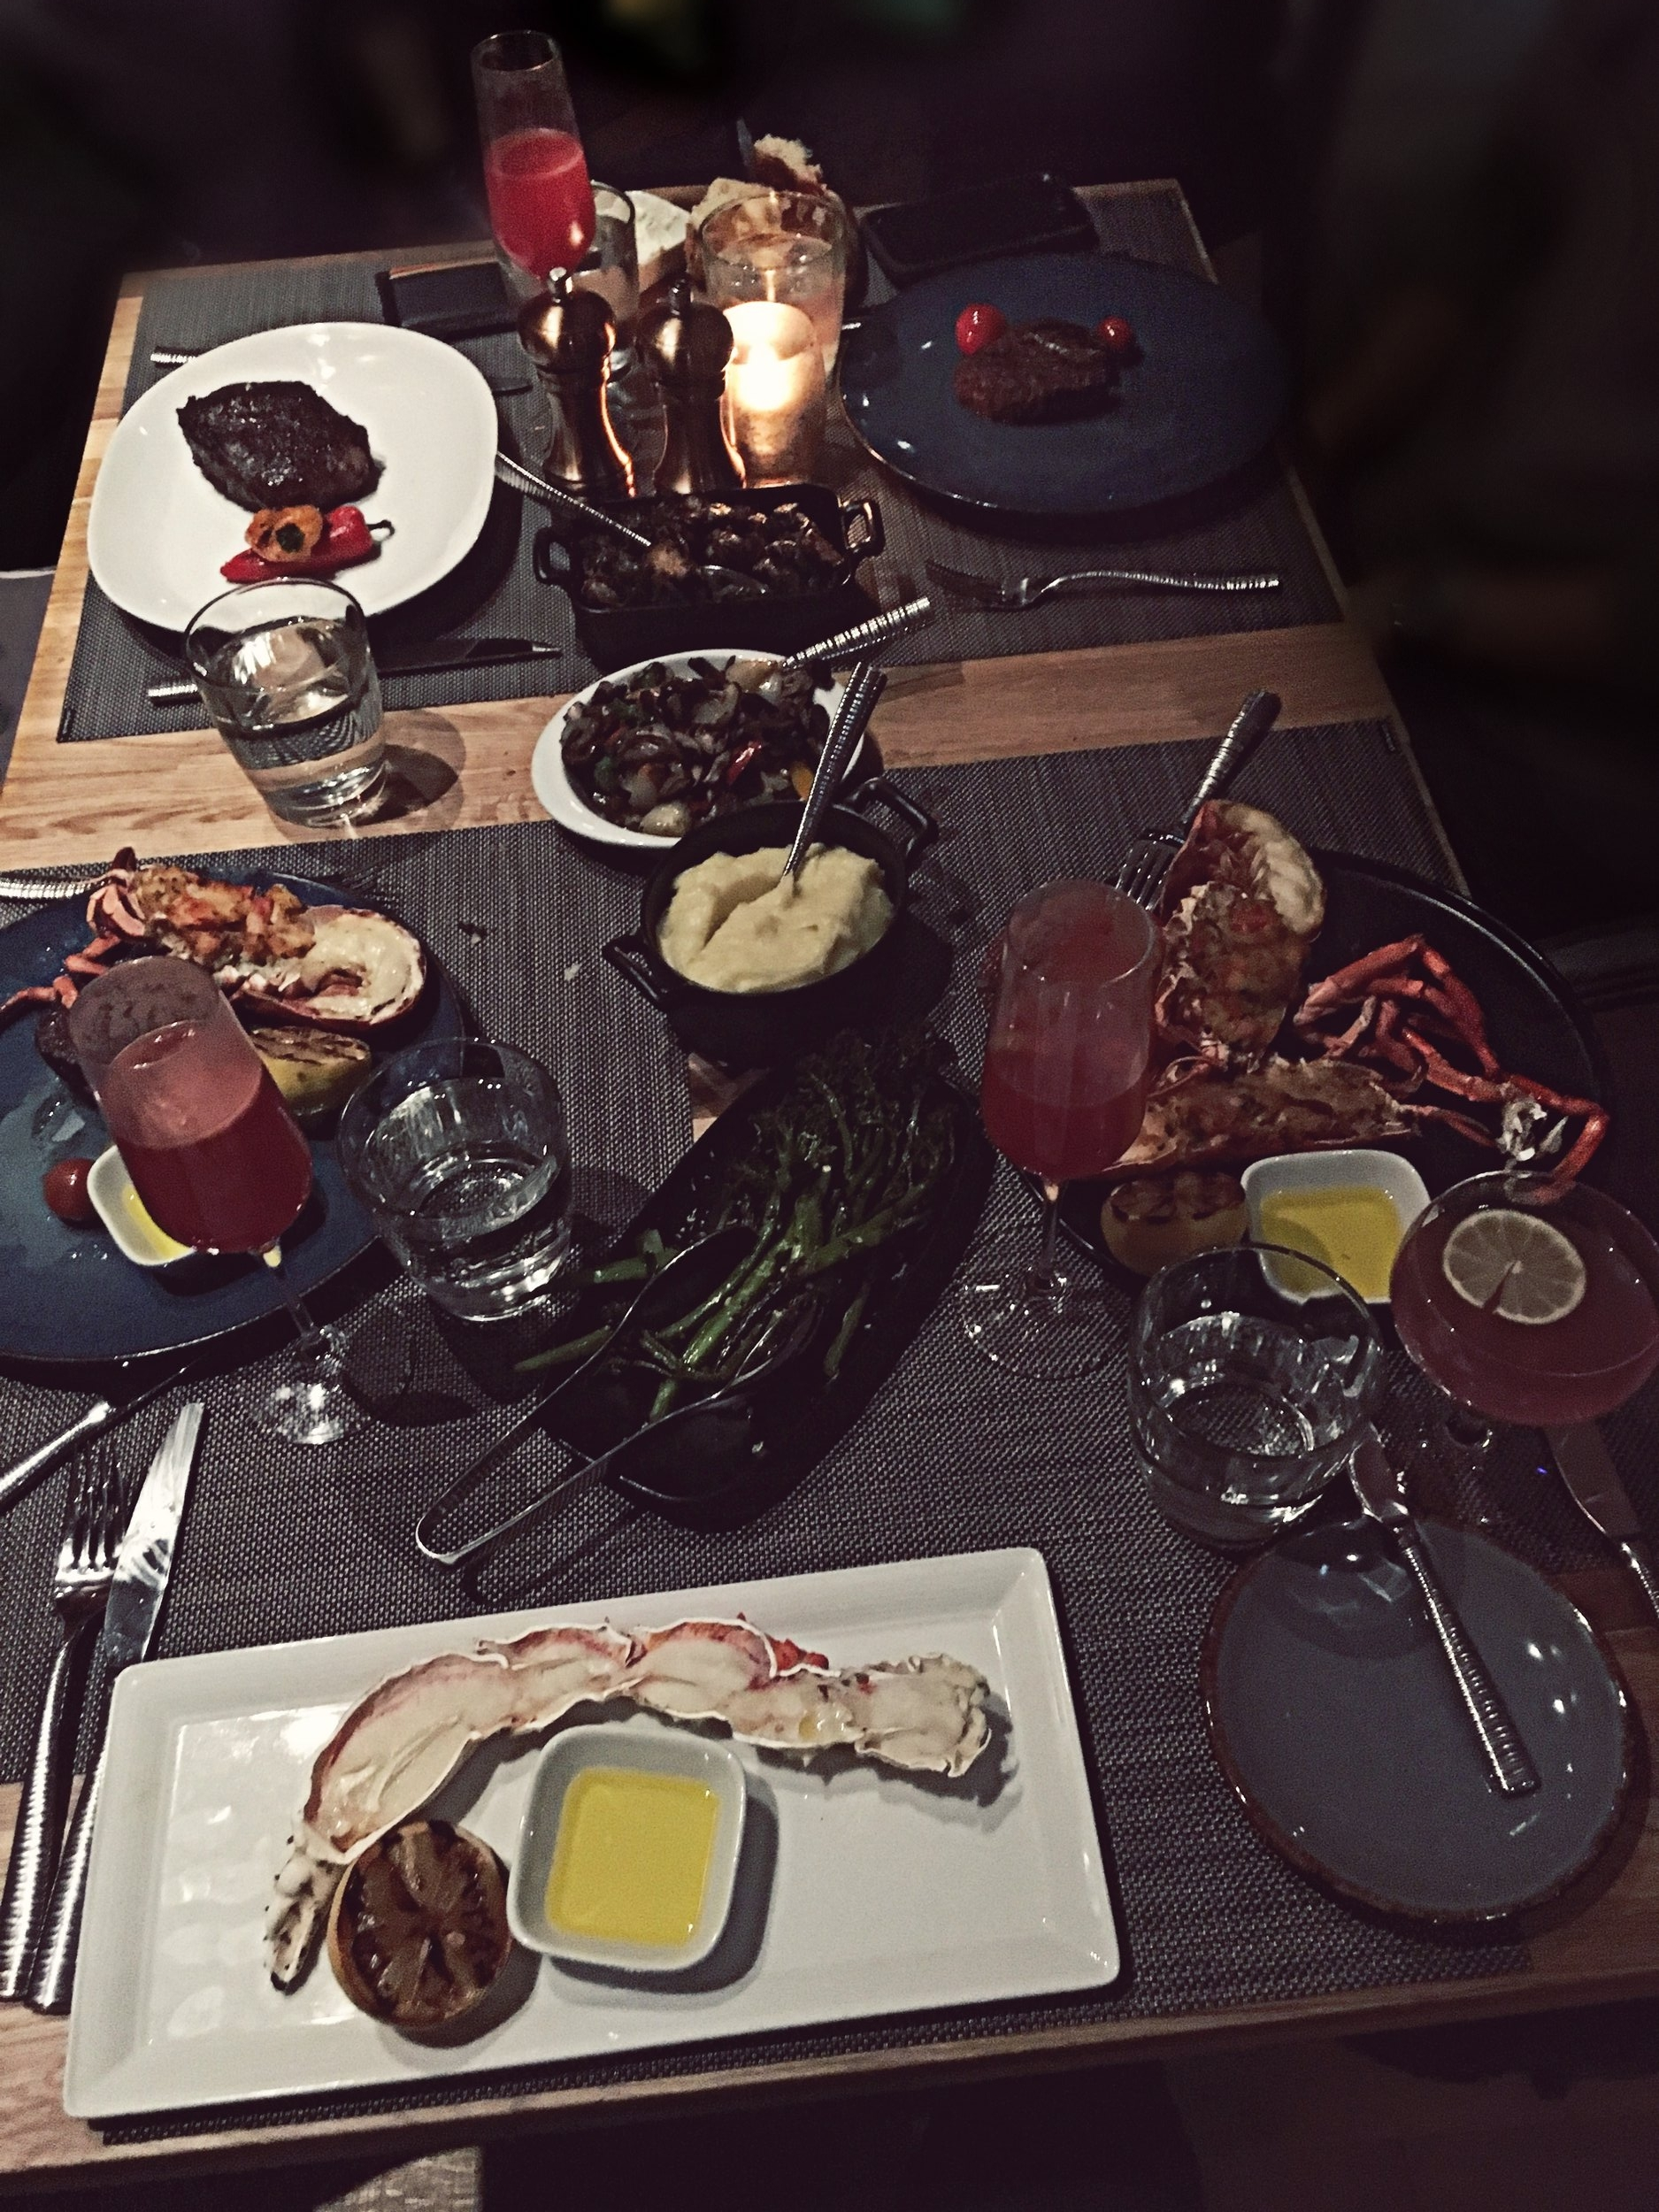 So f*cking good . . . - Our Dinner :⤚ Salmon & Chu Toro Tuna Sashimi (not shown in photo)⤚ Bone in Striploin⤚ Filet Minion⤚ Baked & stuffed Lobster⤚ King Crab⤚ Charred Broccolini⤚ Roasted Mushrooms⤚ Mashed Potatoes⤚ Port Royal & French Smash Cocktails (SO effing good)▽ FYI, I didn't eat any of the steak, as I don't eat meat (many of you already knew that). ♡ My family really enjoyed it though ☺